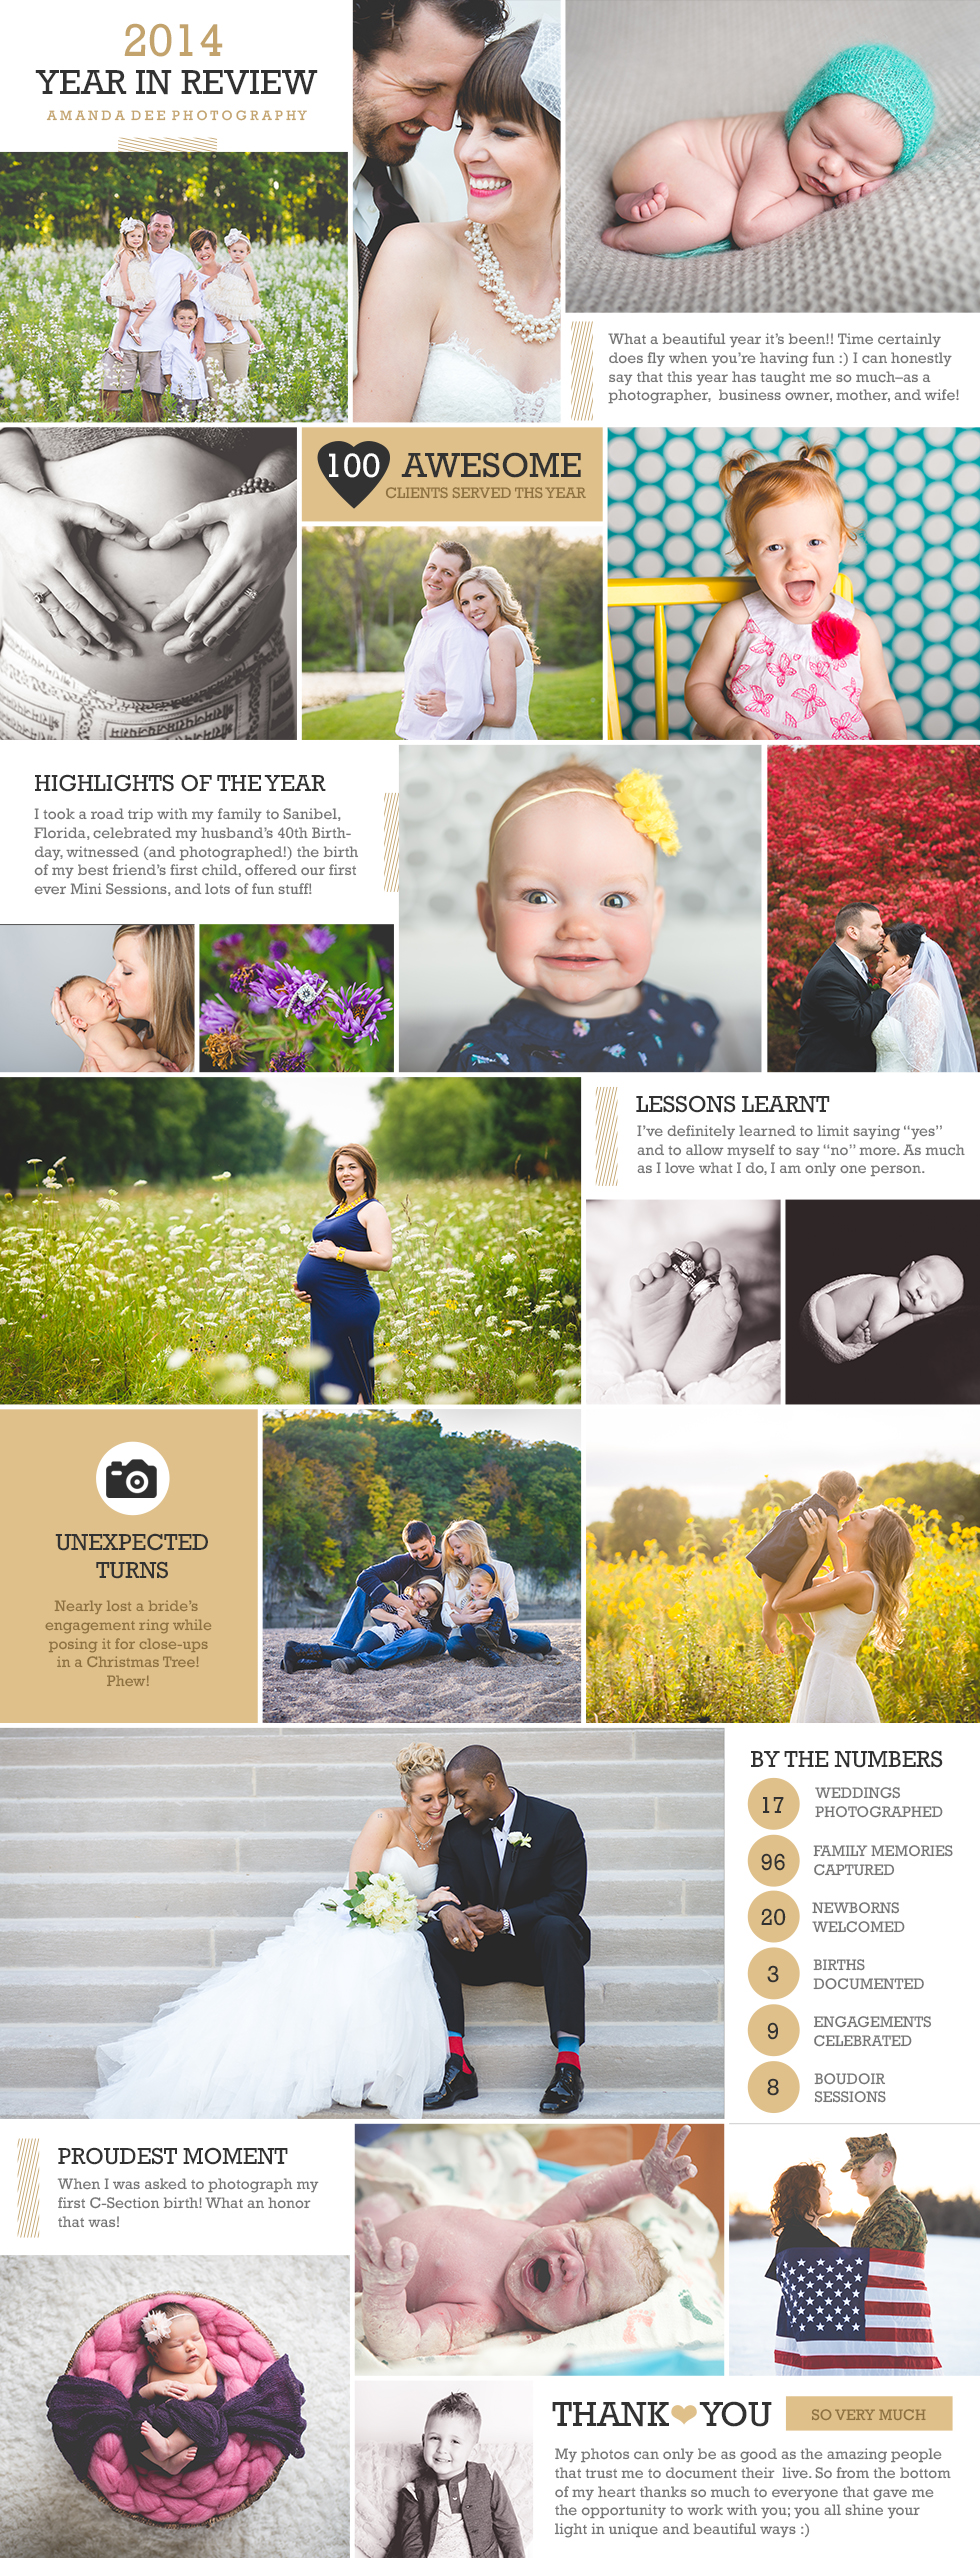 AmandaDeePhotography2014YearInReviewBlogPostBoard